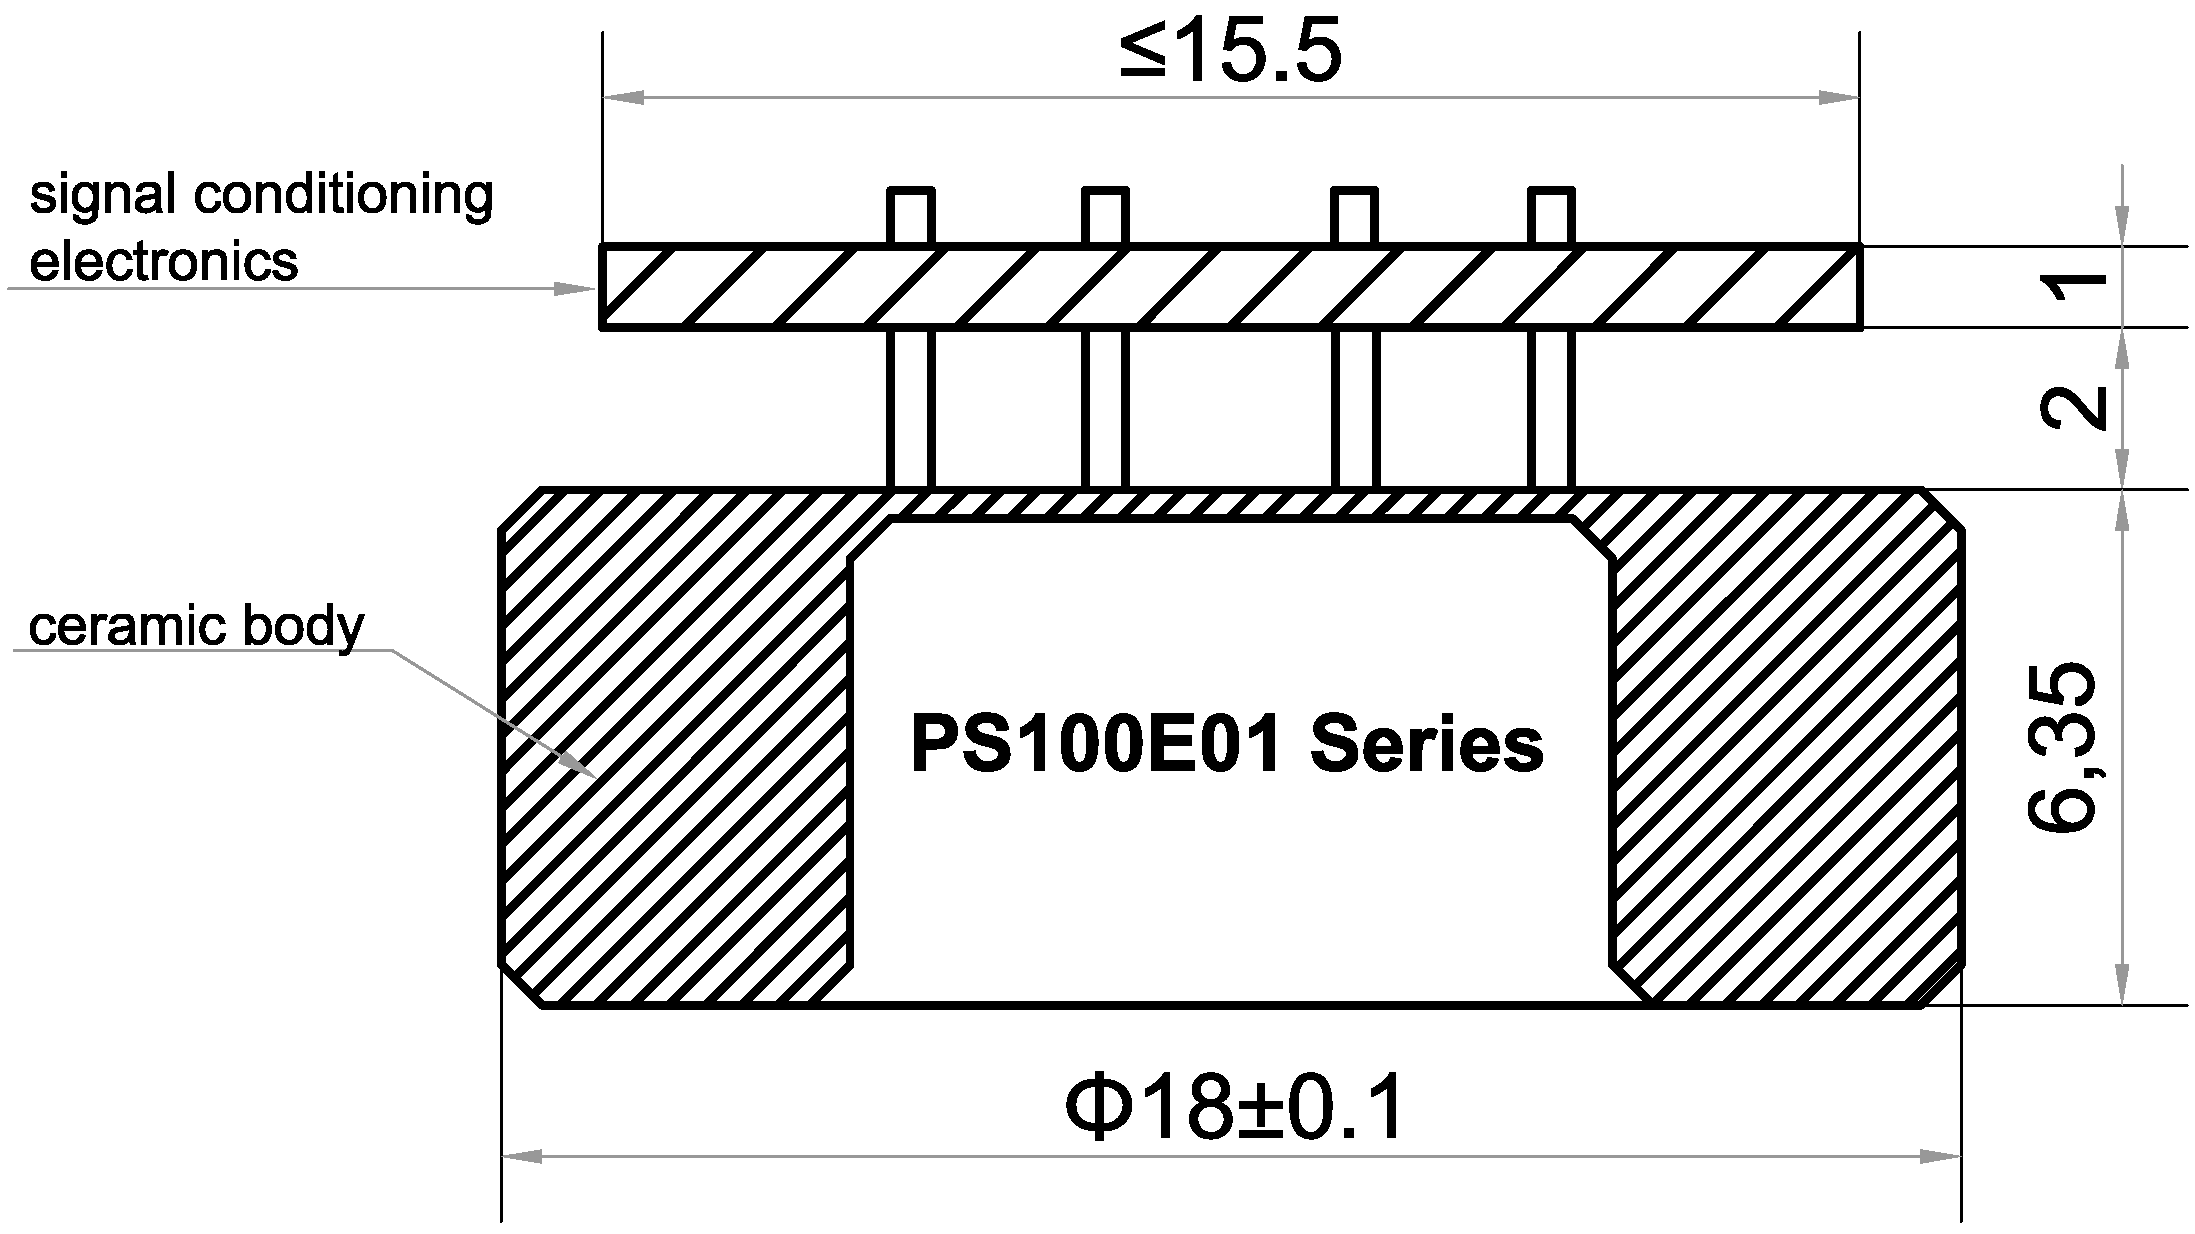 PS100E01 series 0.5-4.5V ceramic pressure sensor